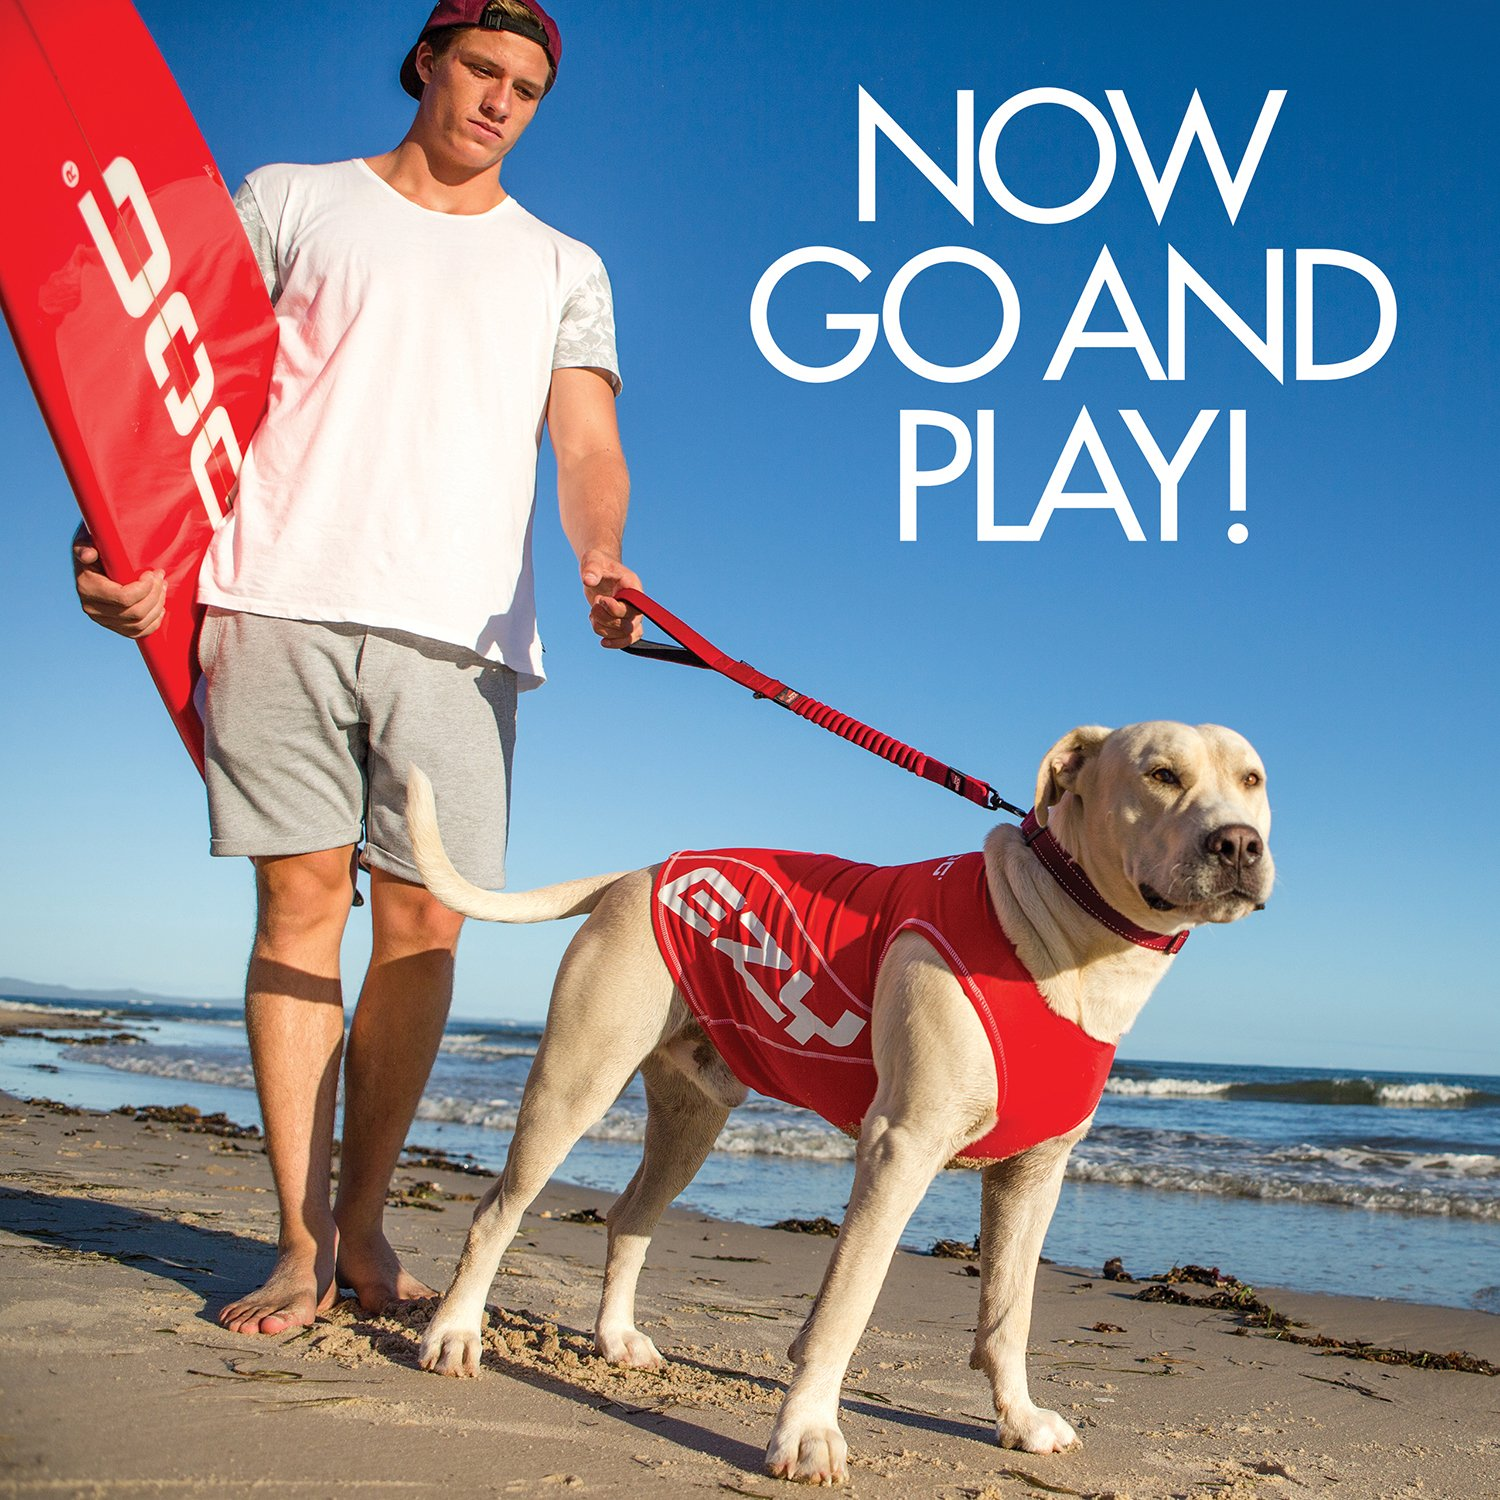 EzyDog Rashguard Vest - Premium Dog Shirt Allowing All-Day Water Use - Tested to Provide 50+ UV Protection - Innovative Designfor a Snug, Comfortable Fit (X-Large, Red) by EzyDog